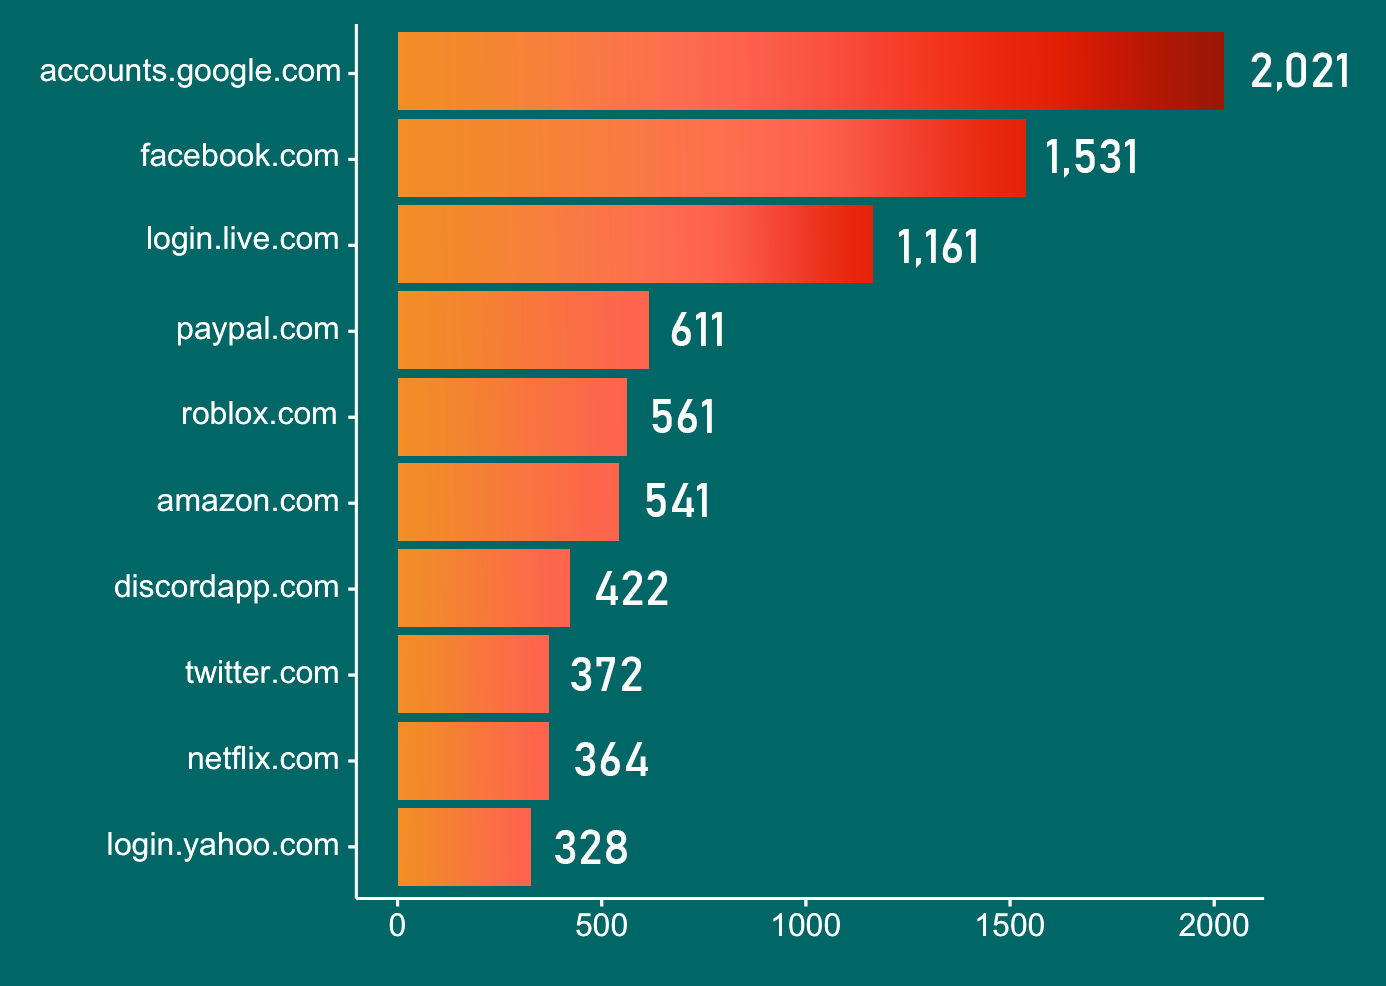 These are the top 10 sites with the most stolen credentials according to a sample dataset that we analyzed. Google tops the list, followed by Facebook, Microsoft, and PayPal respectively.